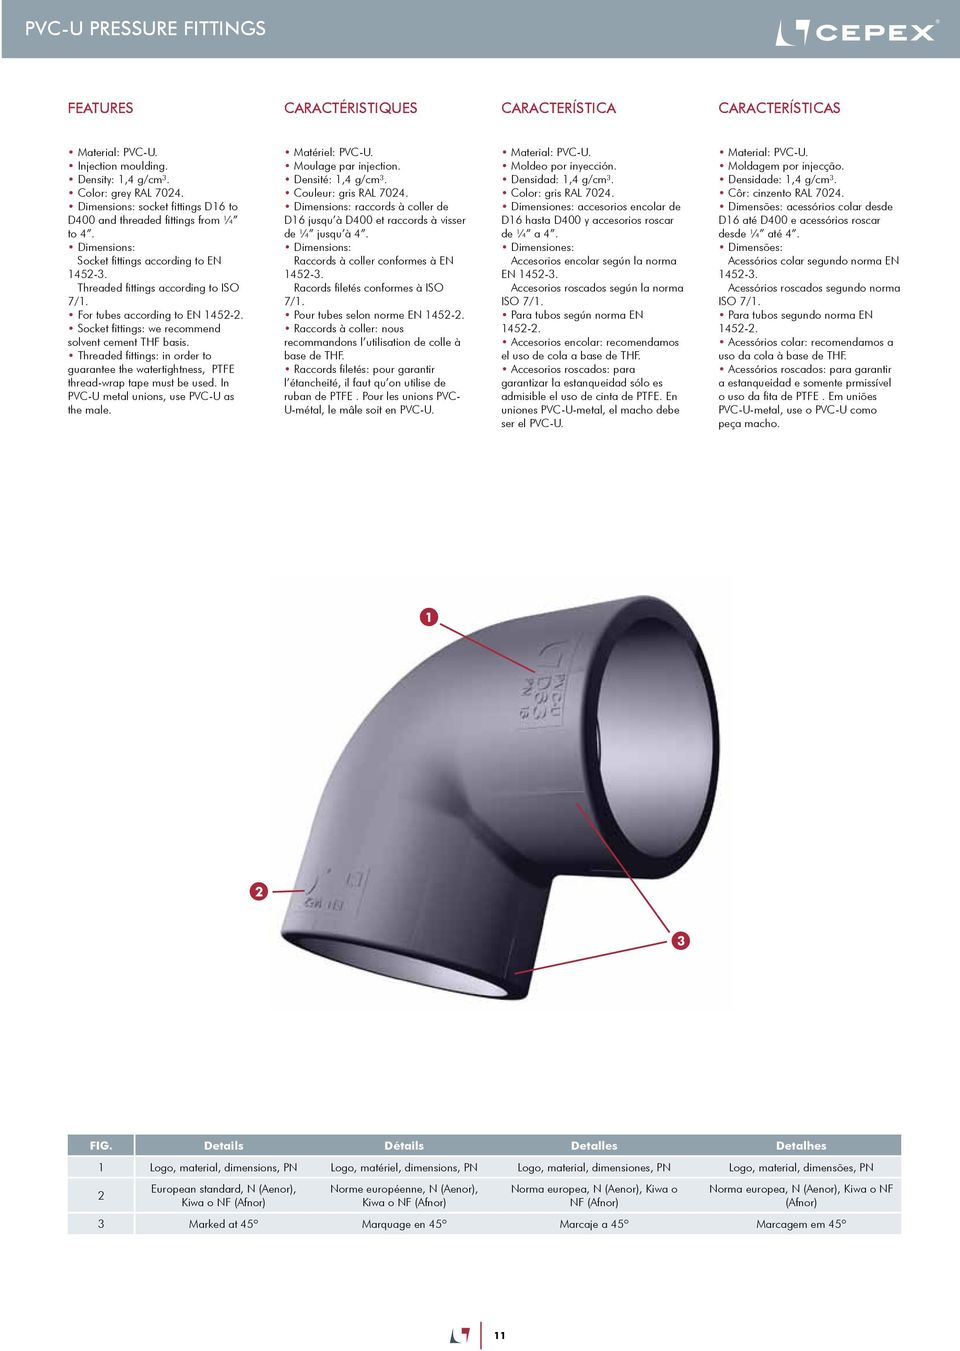 Socket fittings: we recommend solvent cement THF basis. Threaded fittings: in order to guarantee the watertightness, PTF thread-wrap tape must be used. In PVC-U metal unions, use PVC-U as the male.